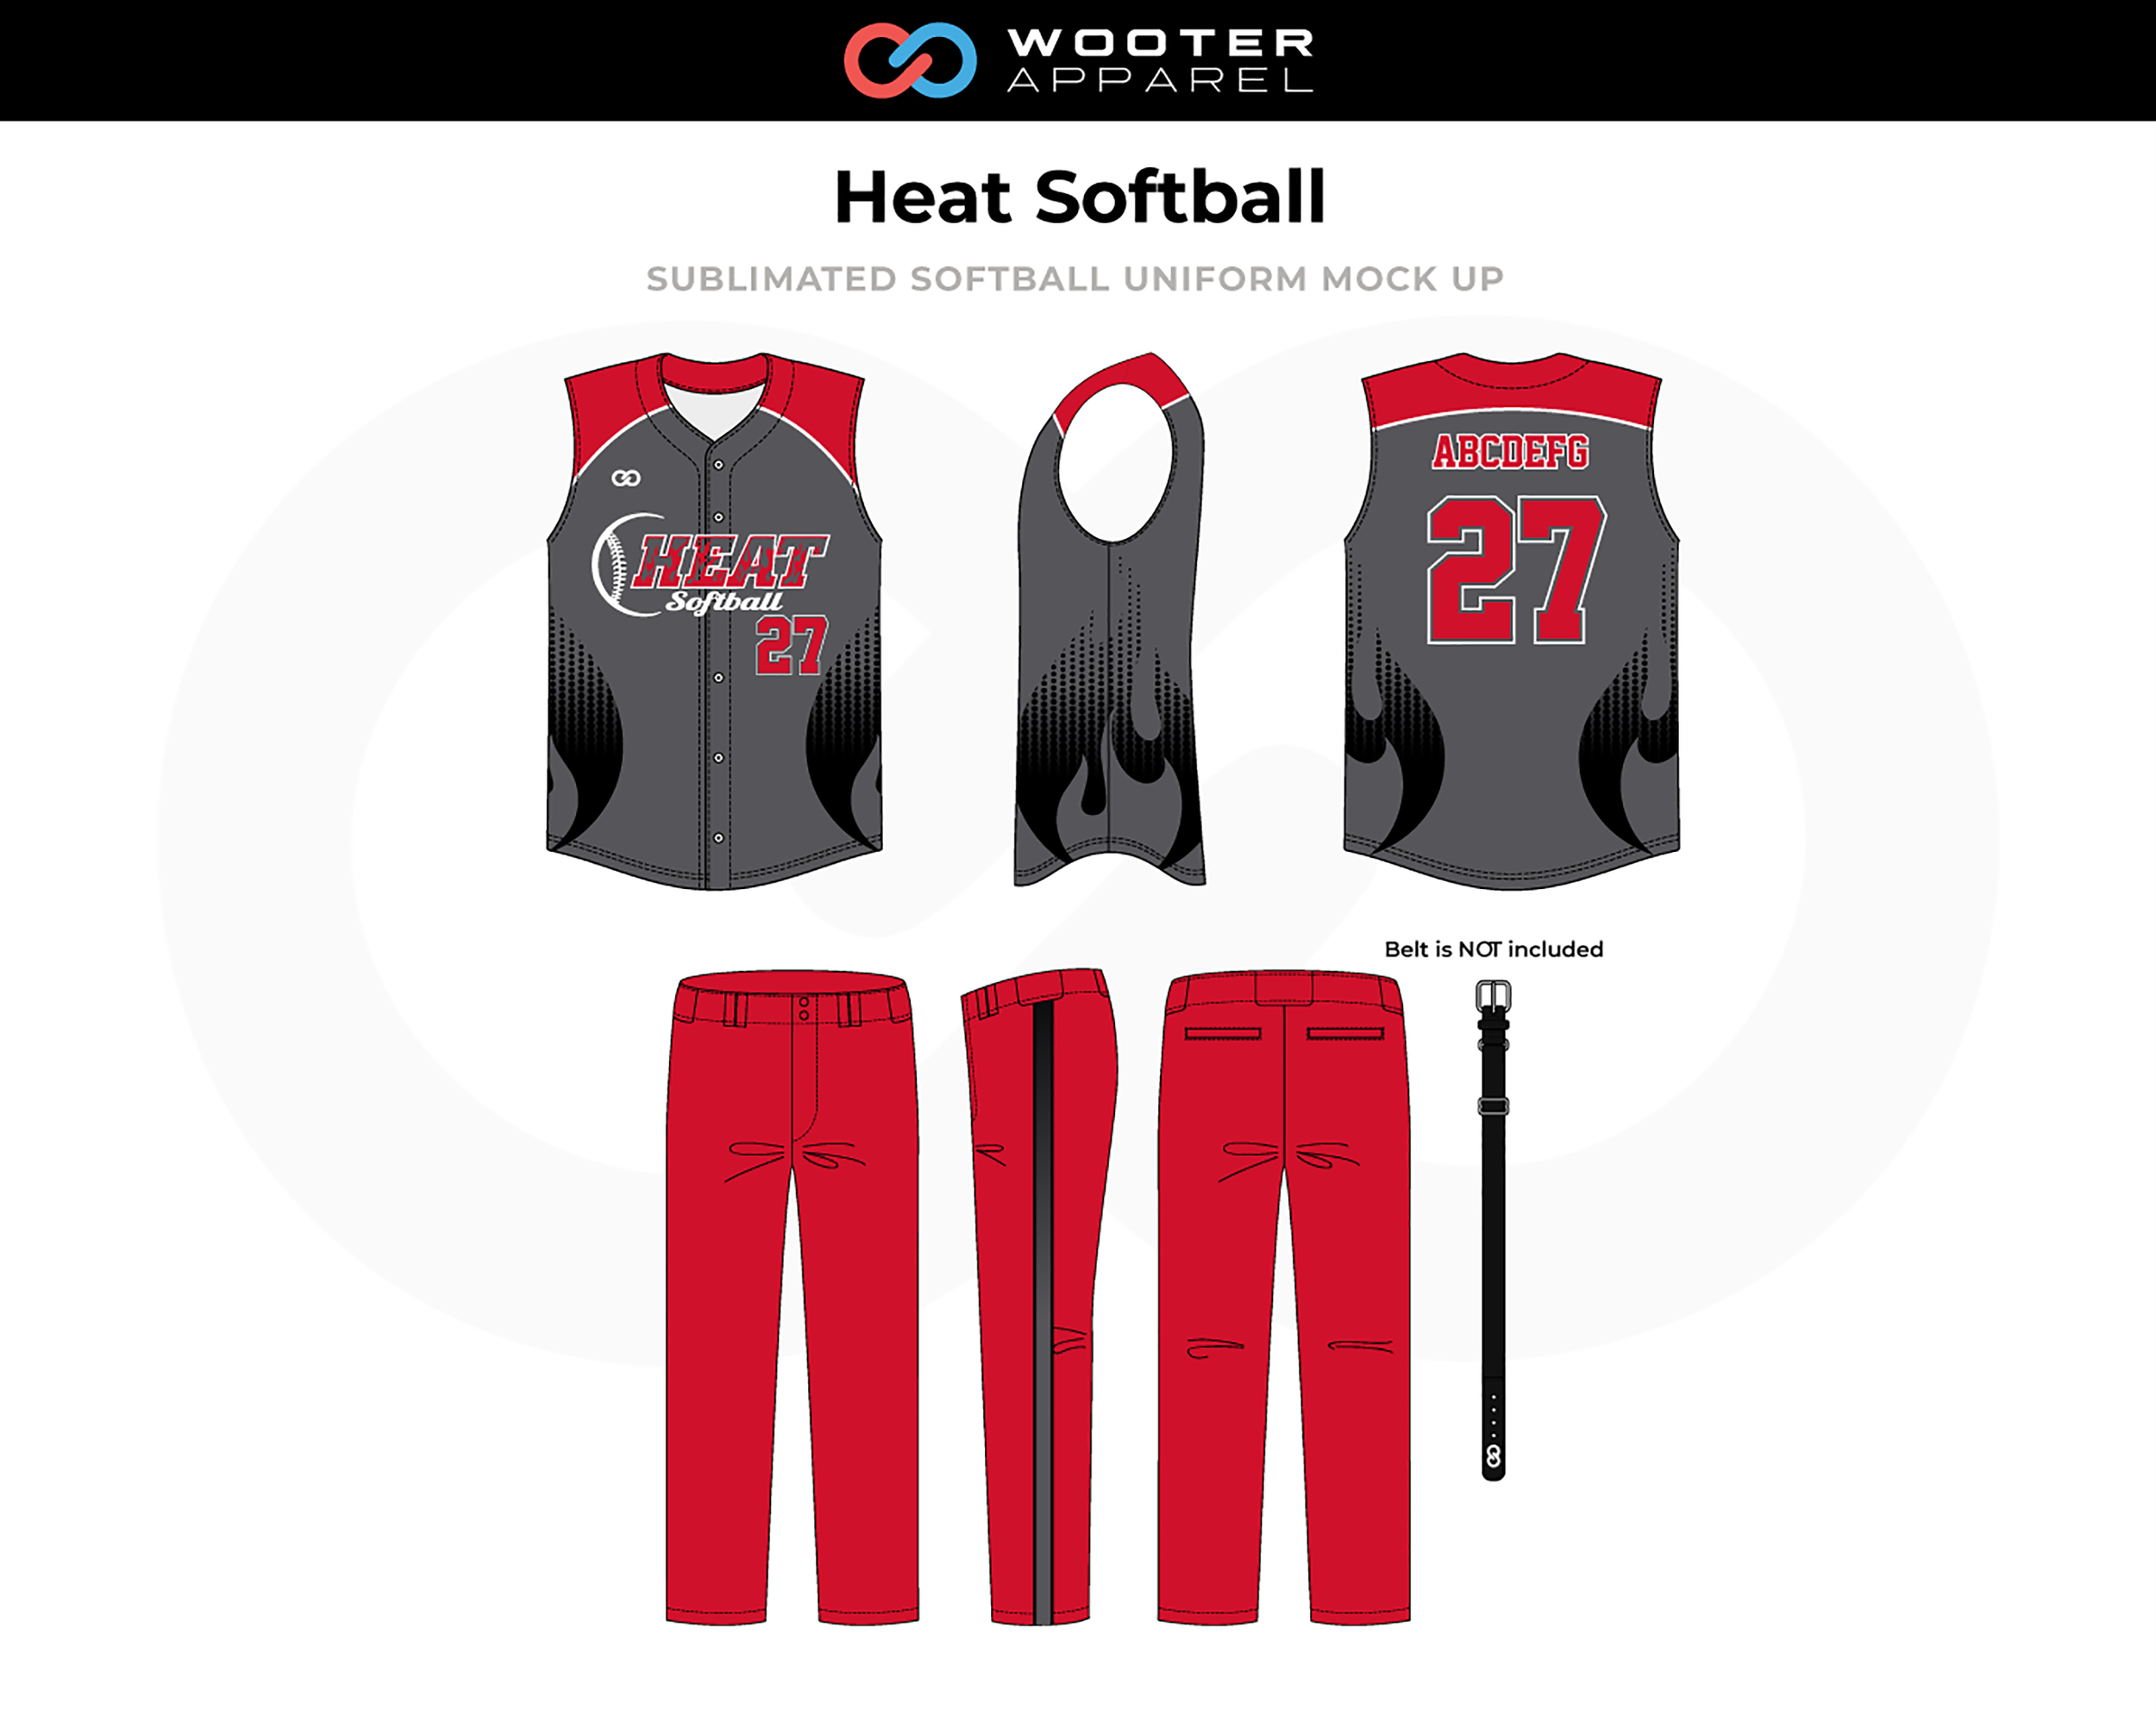 Heat-Softball-Sublimated-Uniform-Mock-Up.png